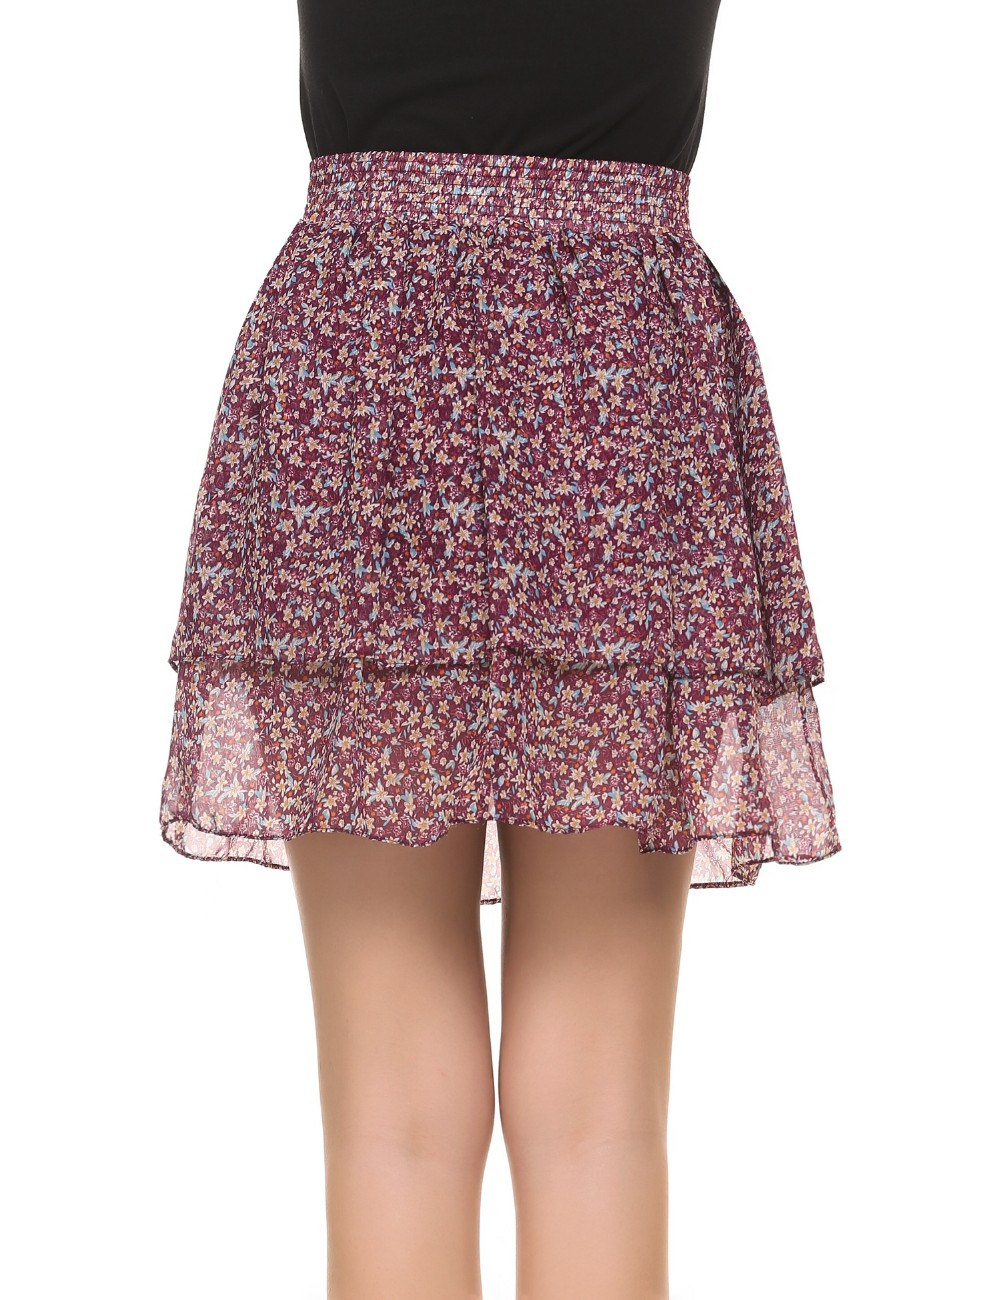 Plus Size Floral Print Layered Chiffon Mini Skater Skirt